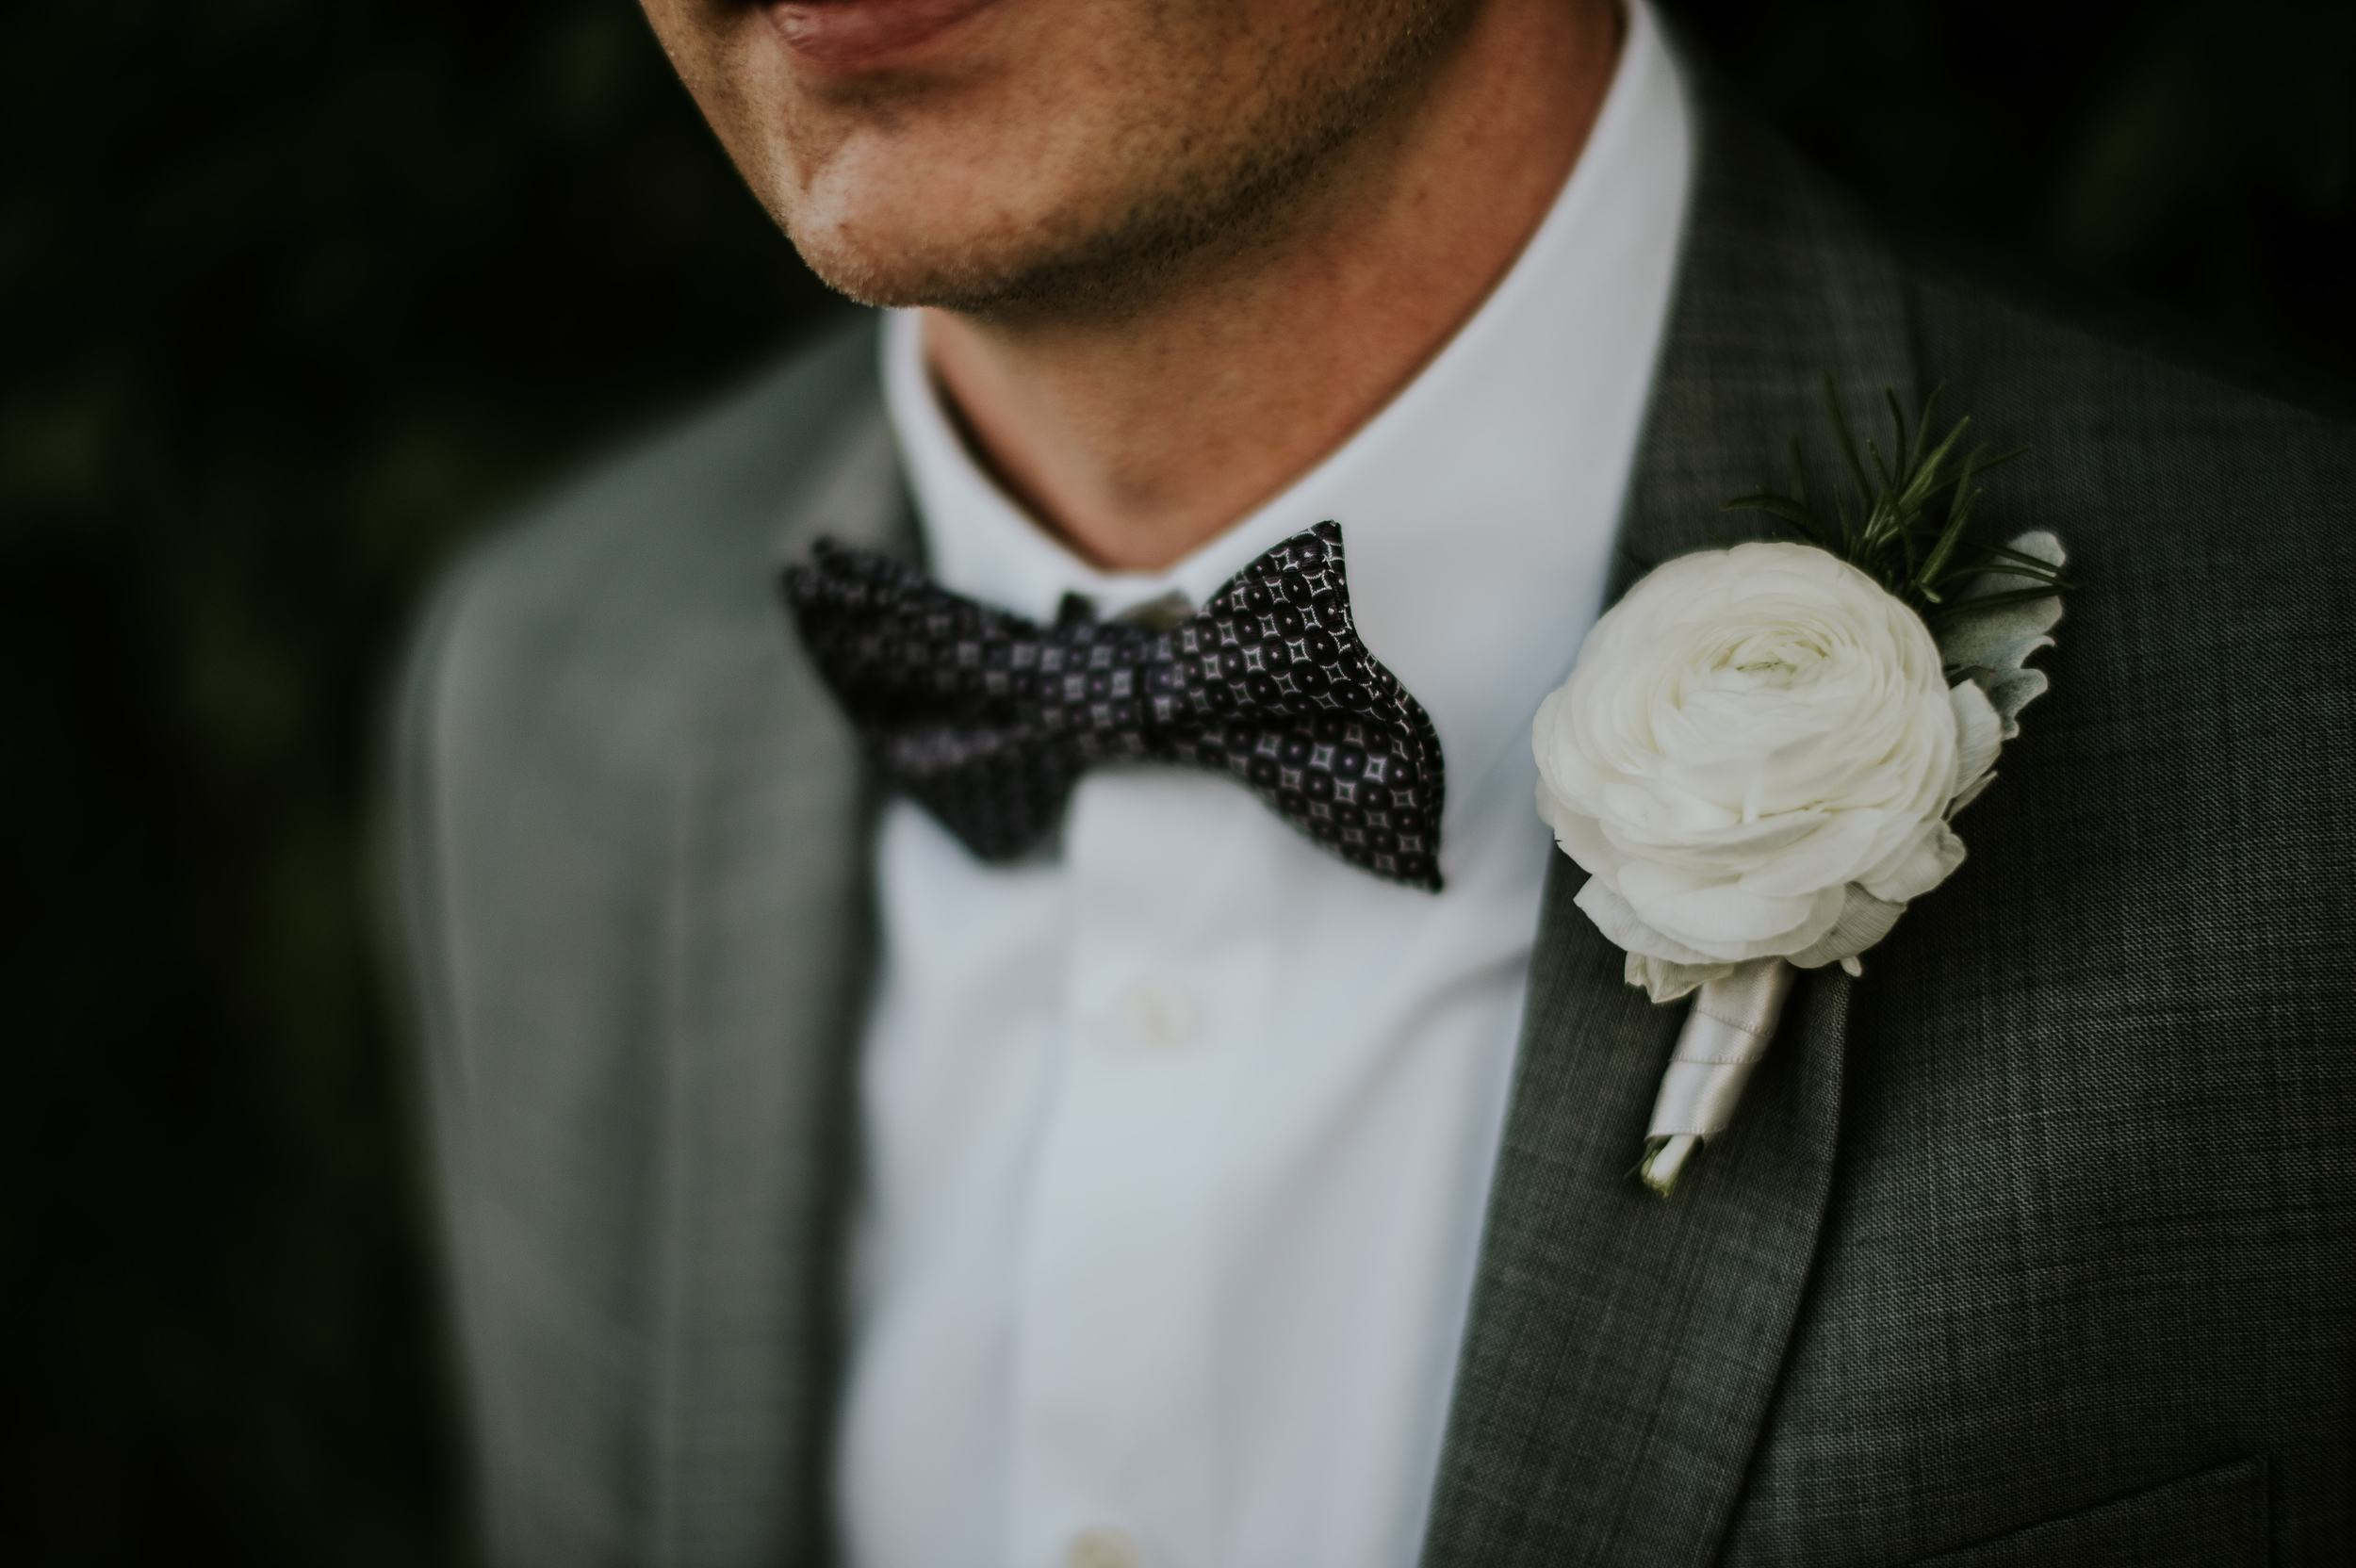 Adam's simple white ranunculus boutonniere with rosemary was the perfect detail!